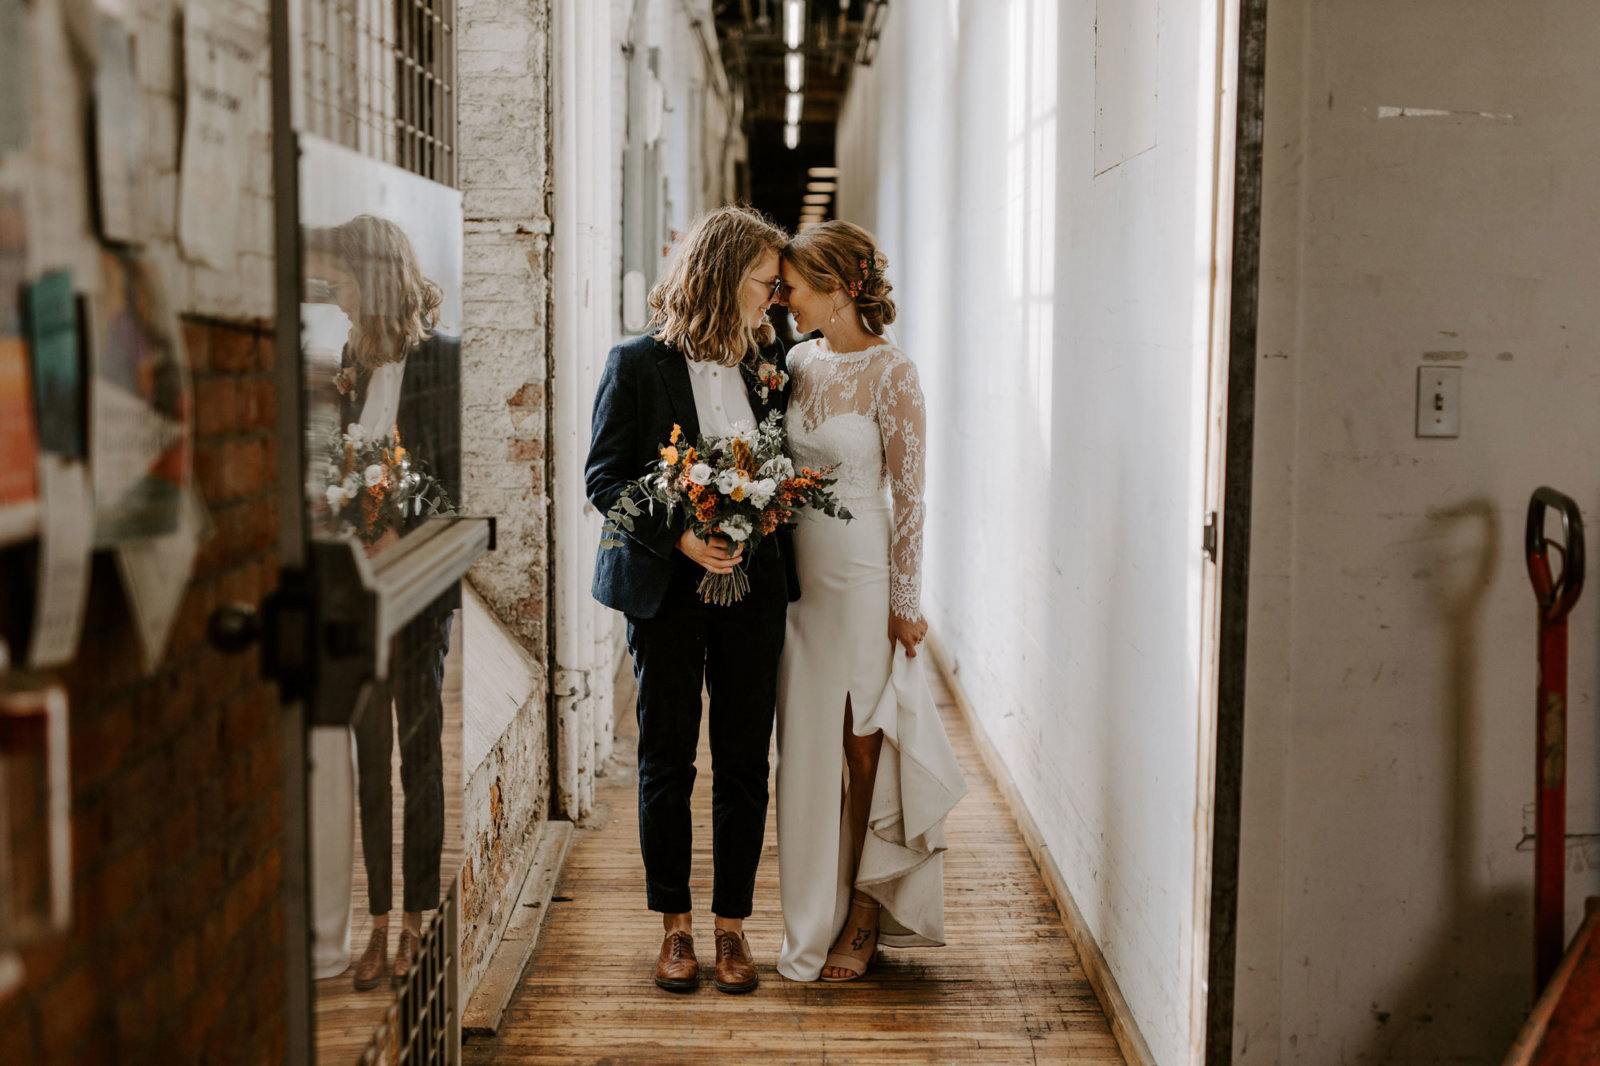 Women wearing a suit on her wedding day